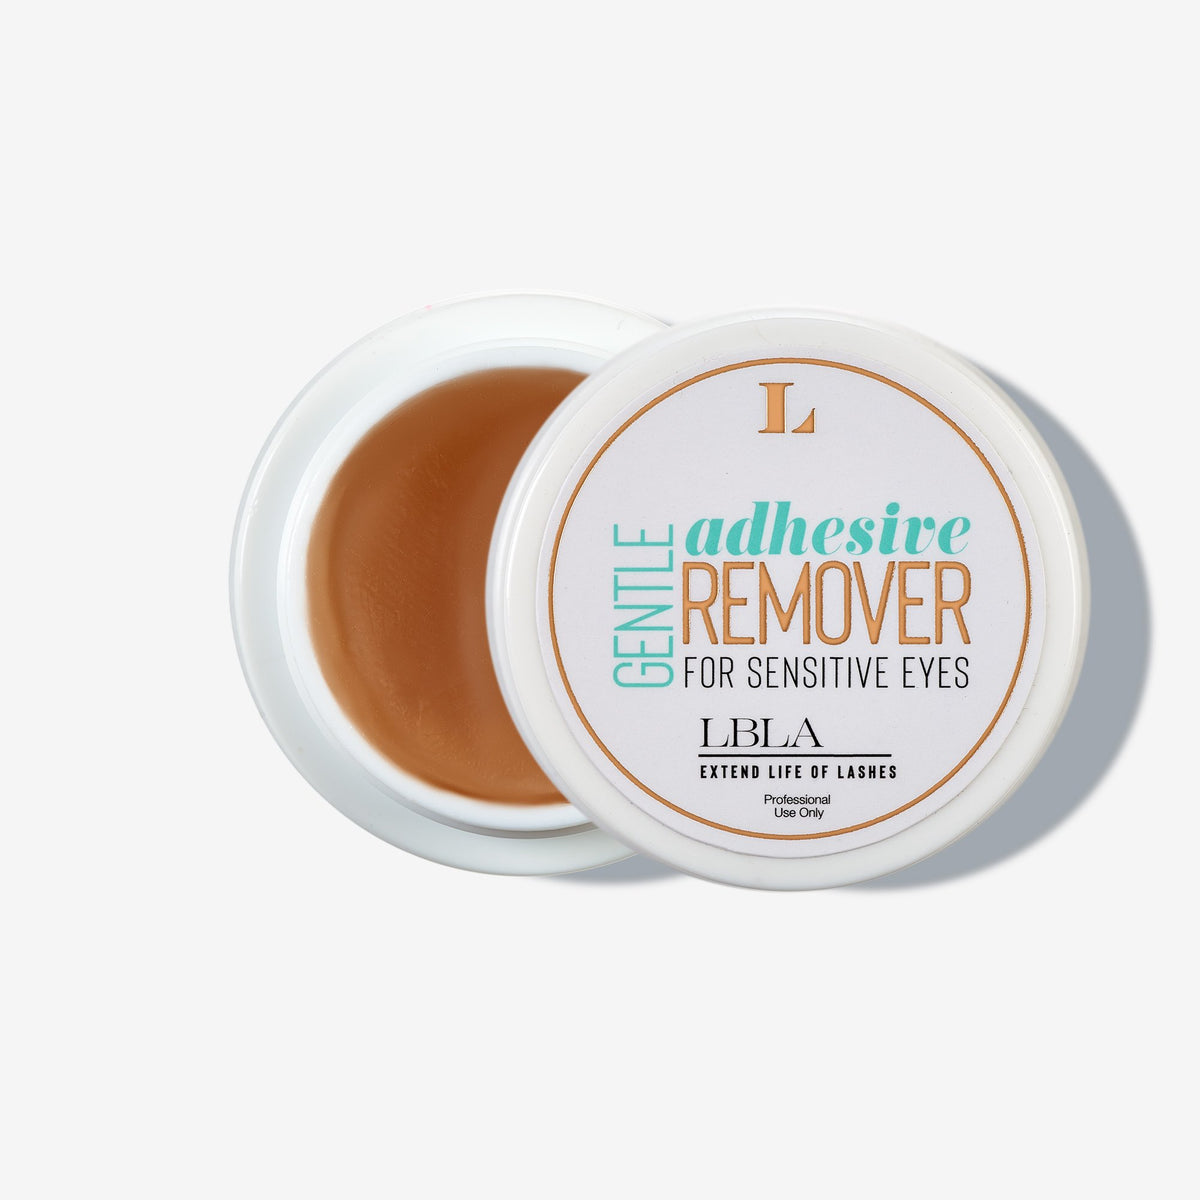 GENTLE ADHESIVE REMOVER FOR SENSITIVE EYES